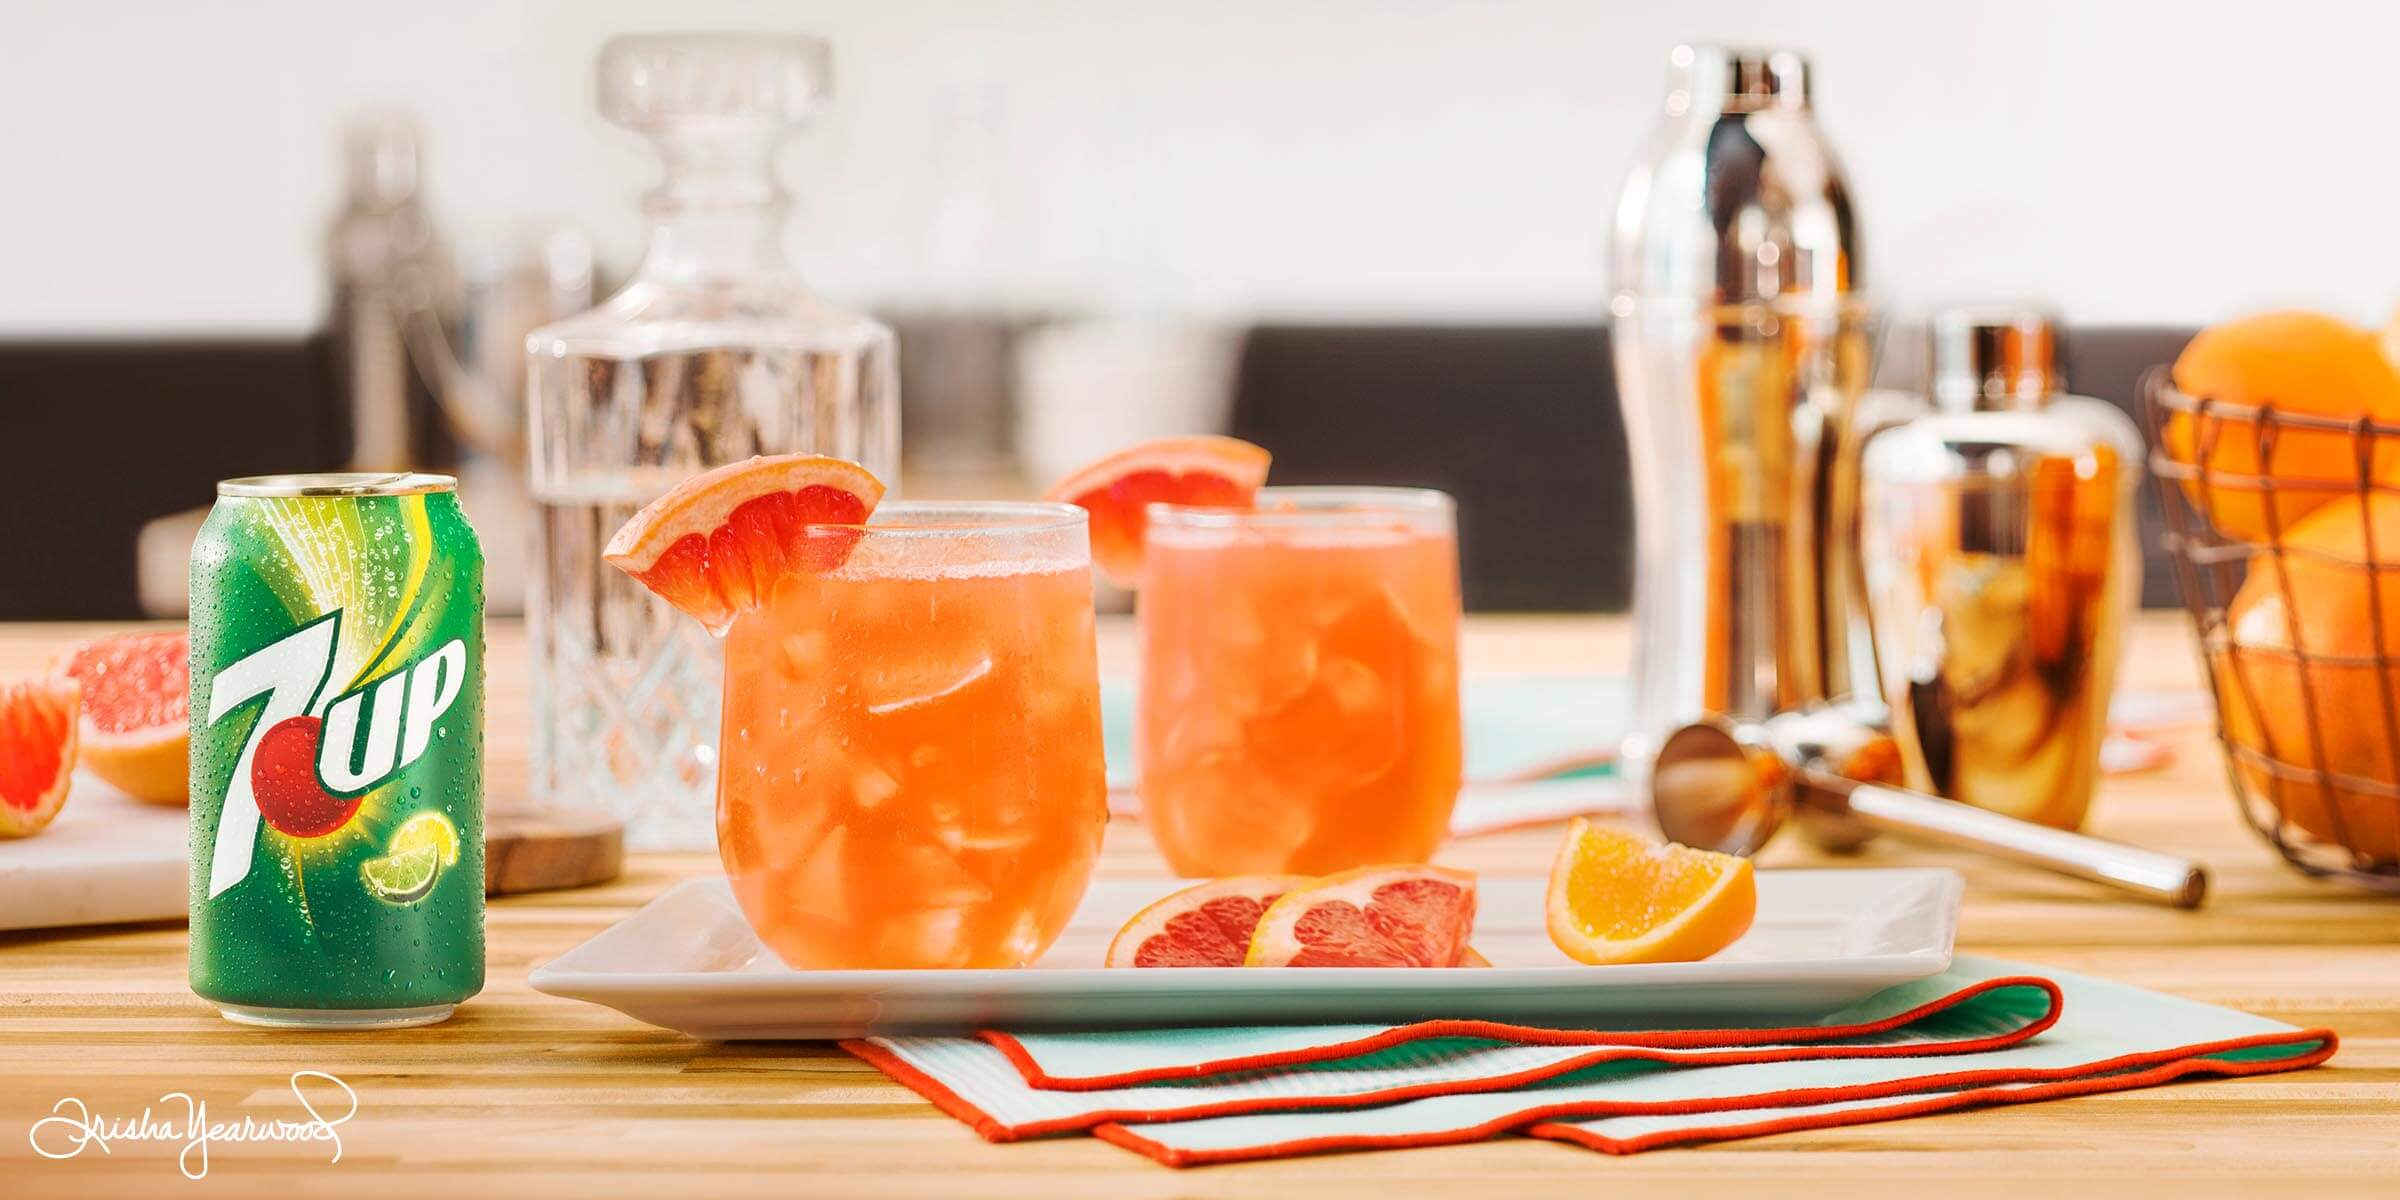 7up-grapefruit-cocktail_hero